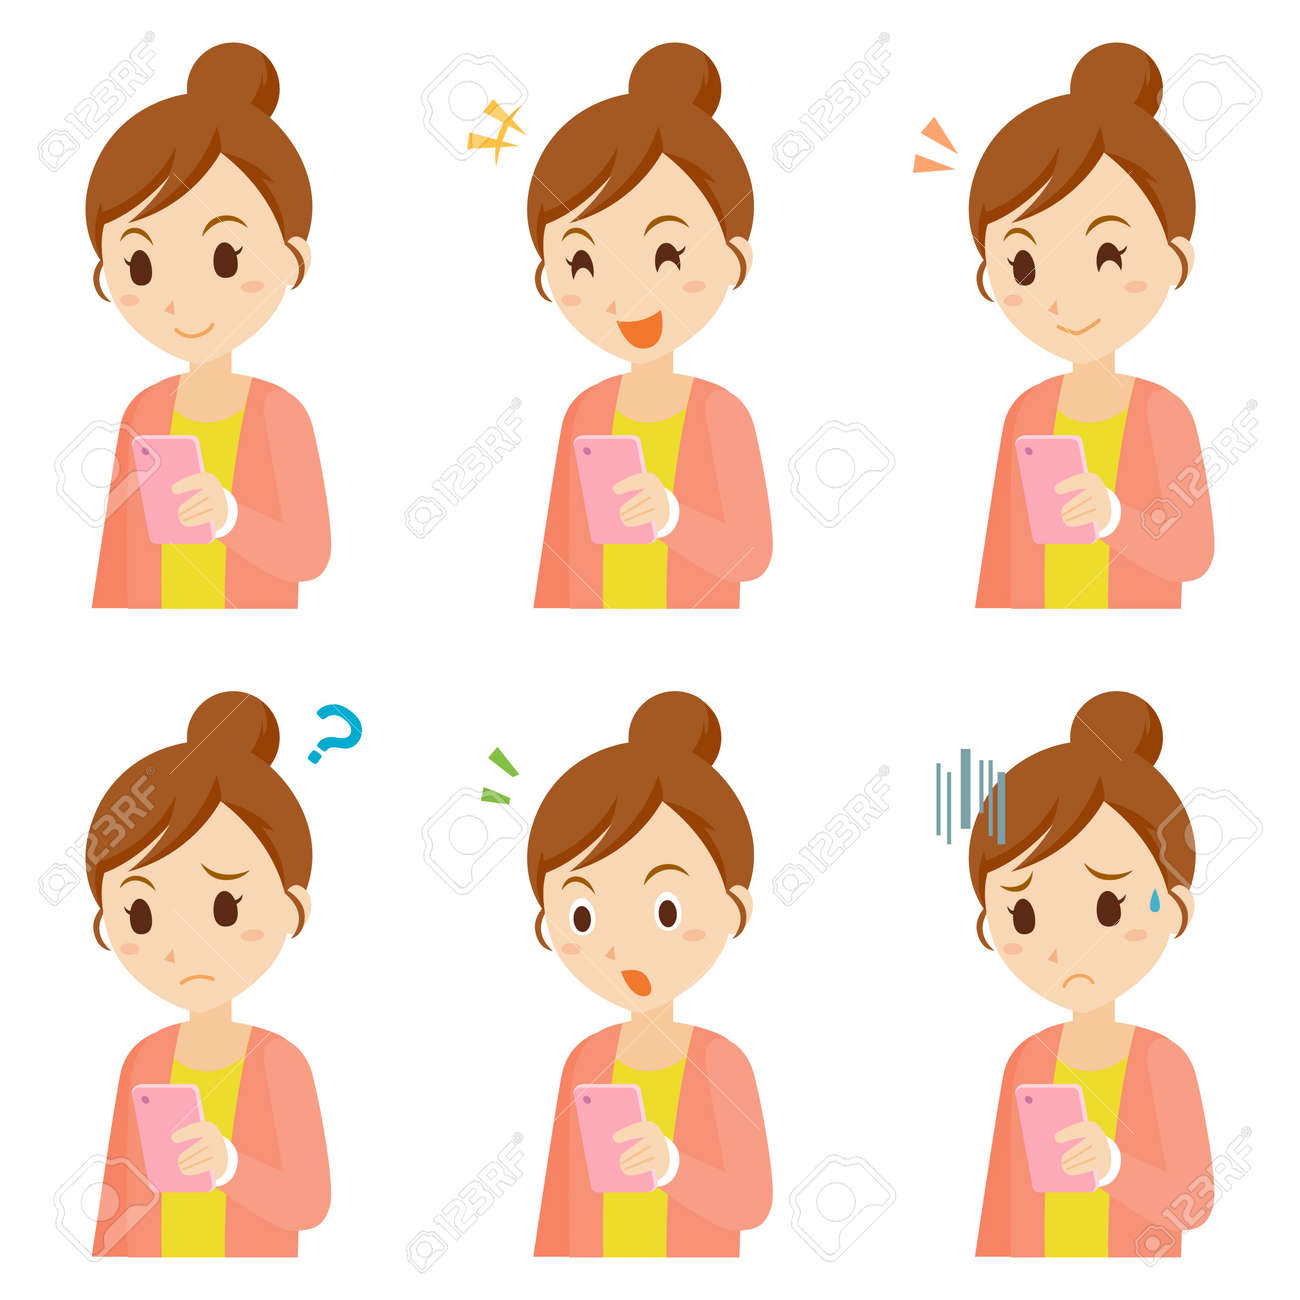 Woman using Mobile Phone Facial Expression Pose - 168556959